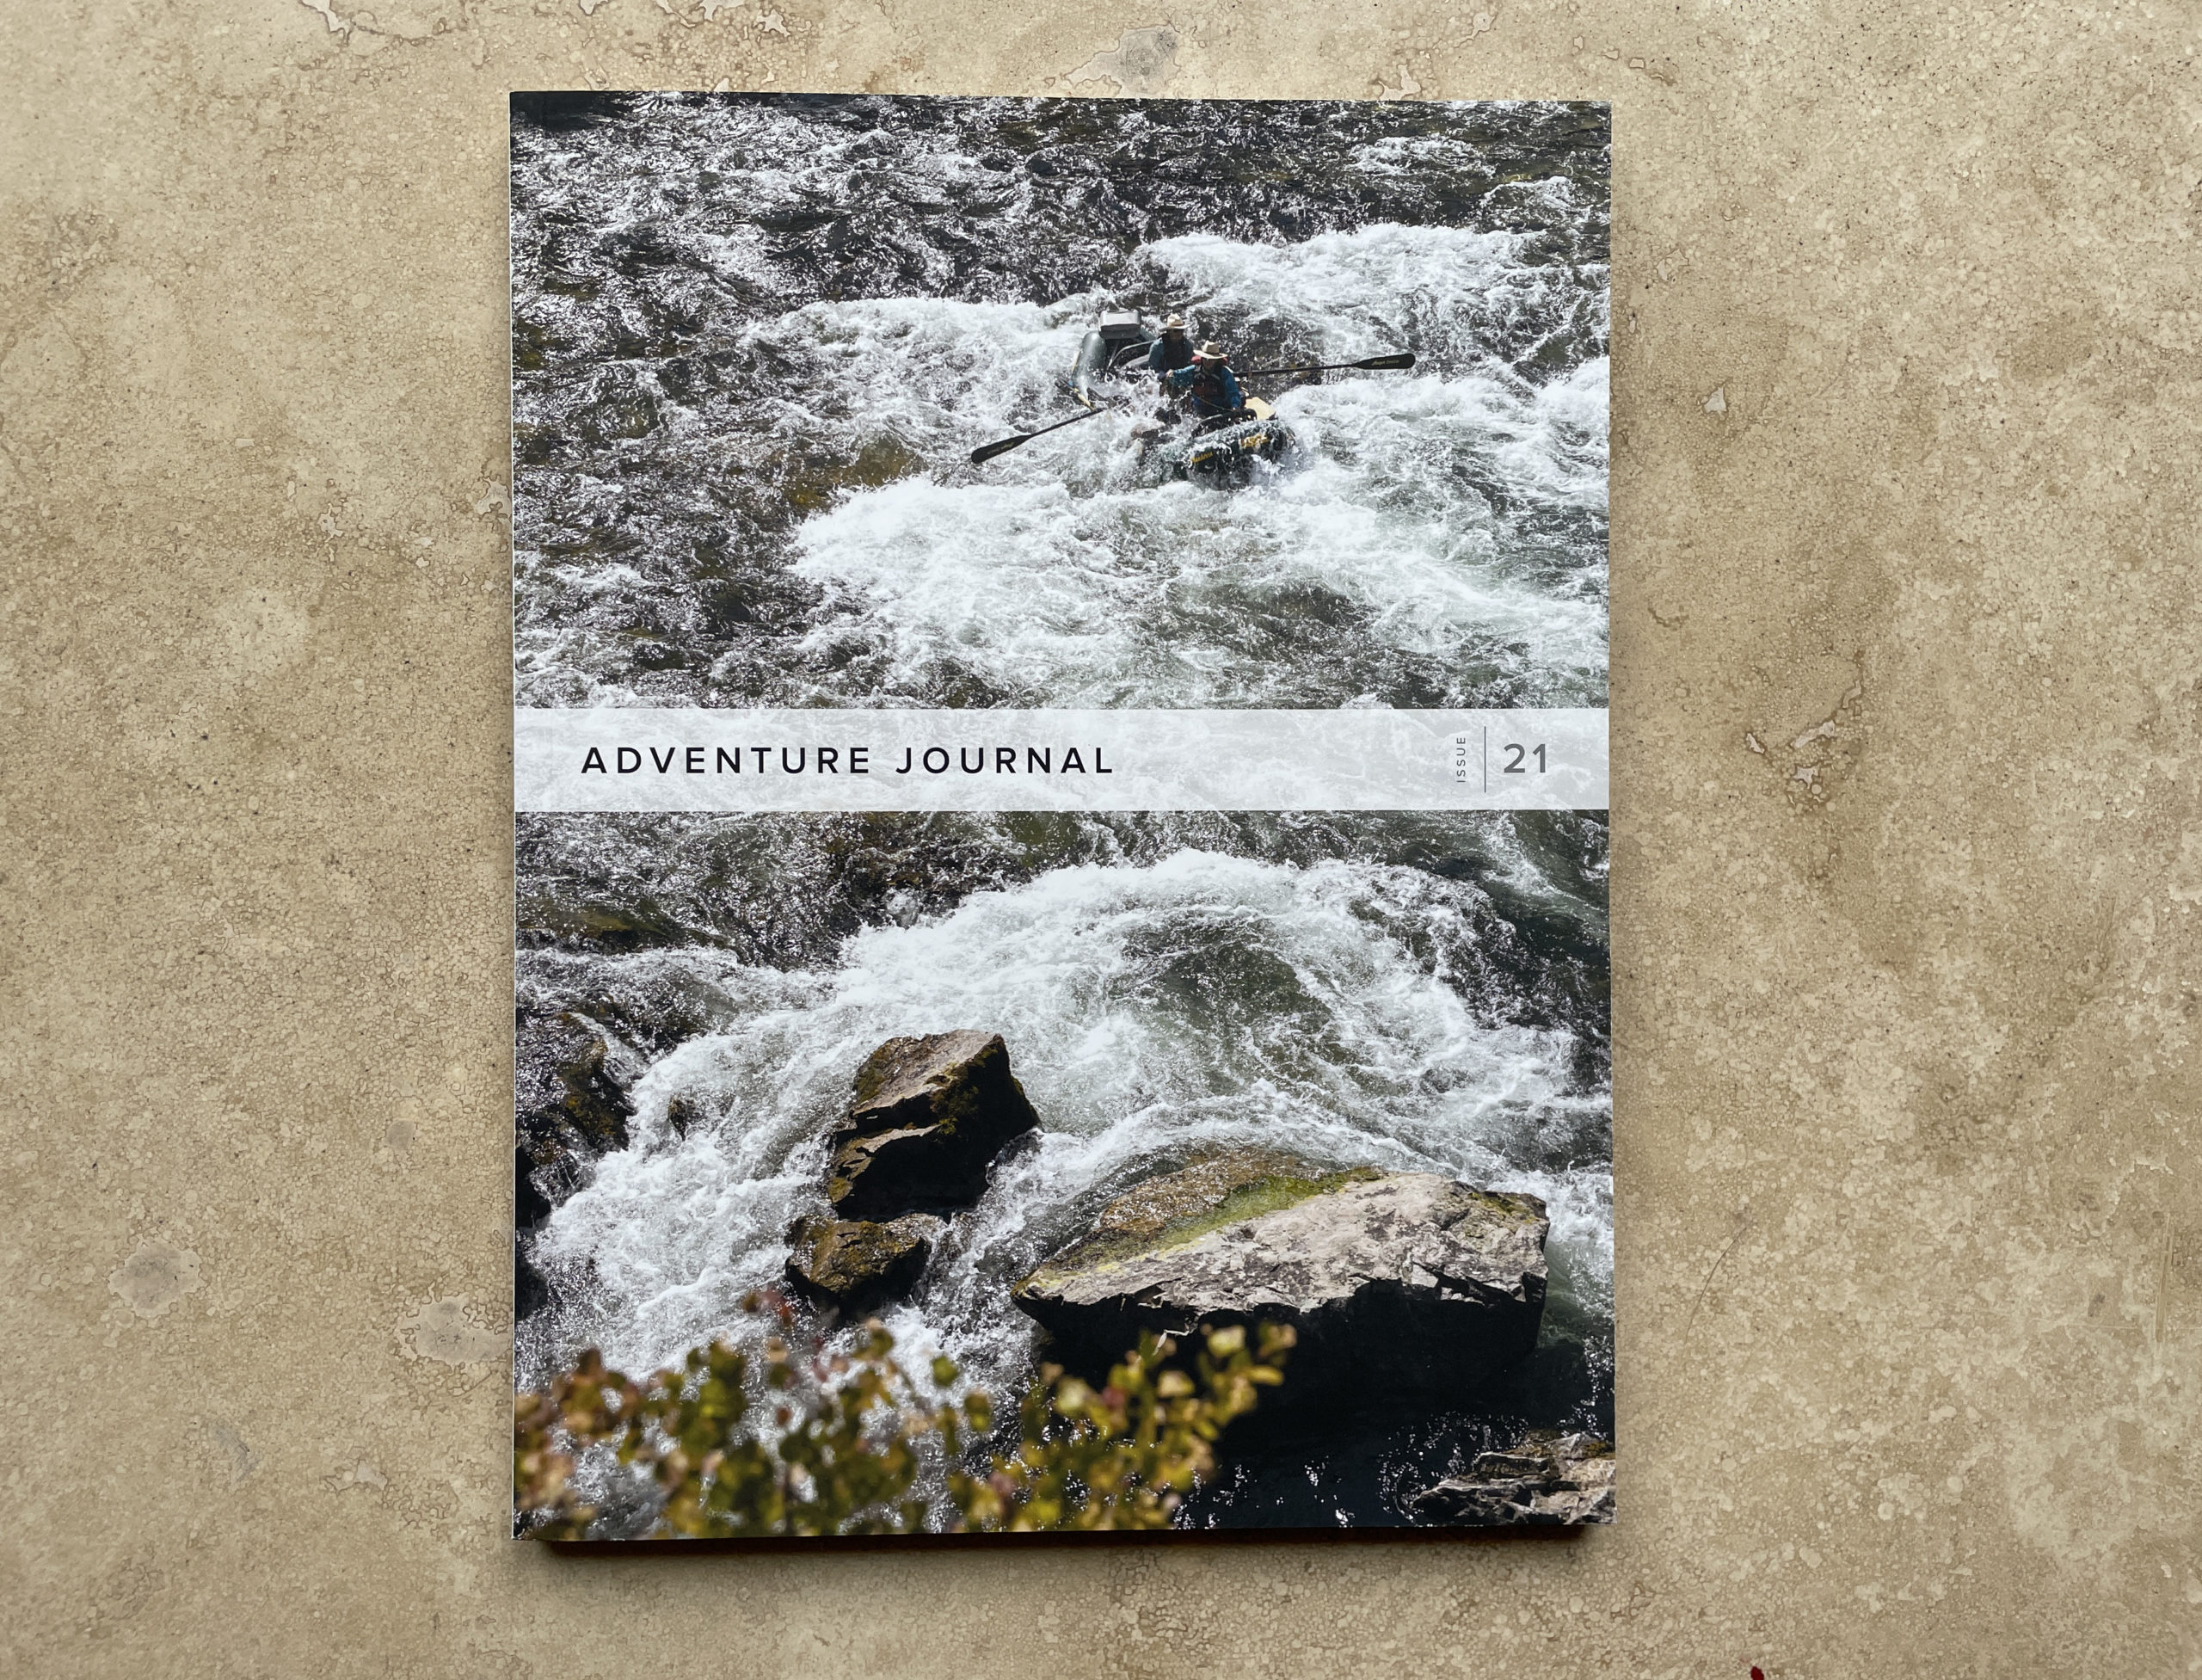 How to Keep Independent Adventure Journal Independent